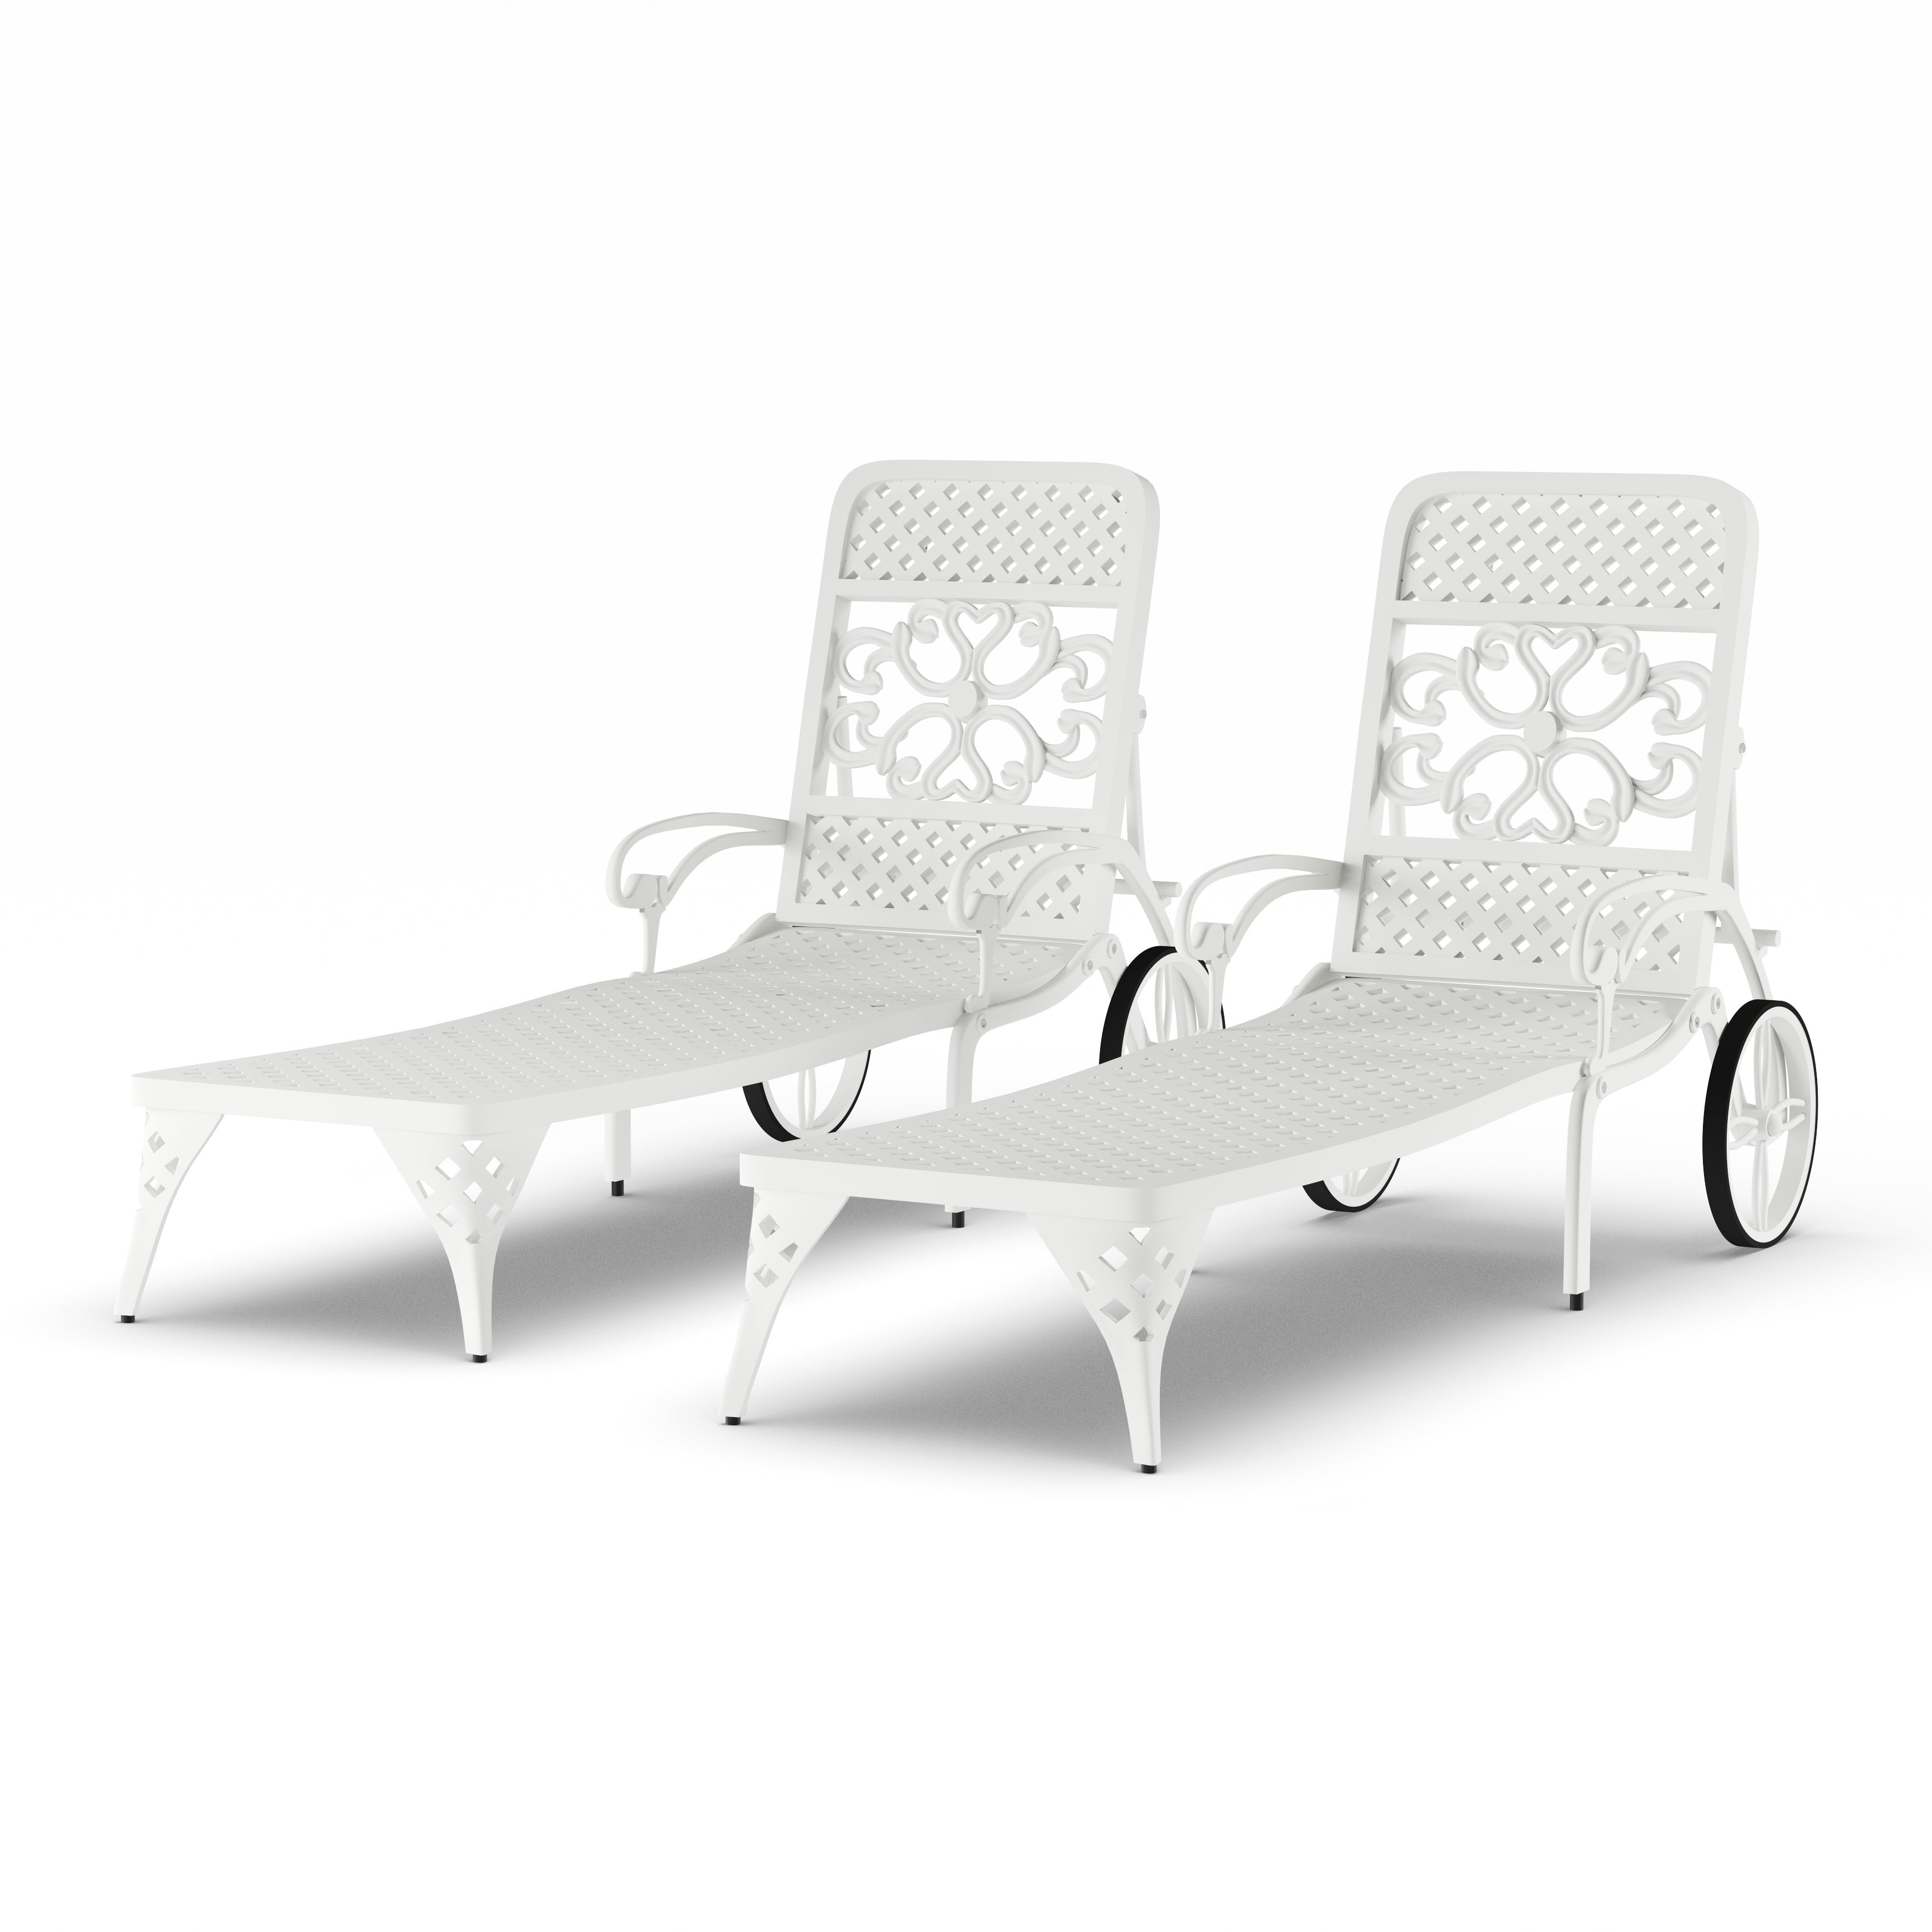 Famous Havenside Home Fenwick Chaise Lounge Chairs (set Of 2) Inside Havenside Home Fenwick Chaise Lounge Chairs (View 4 of 25)